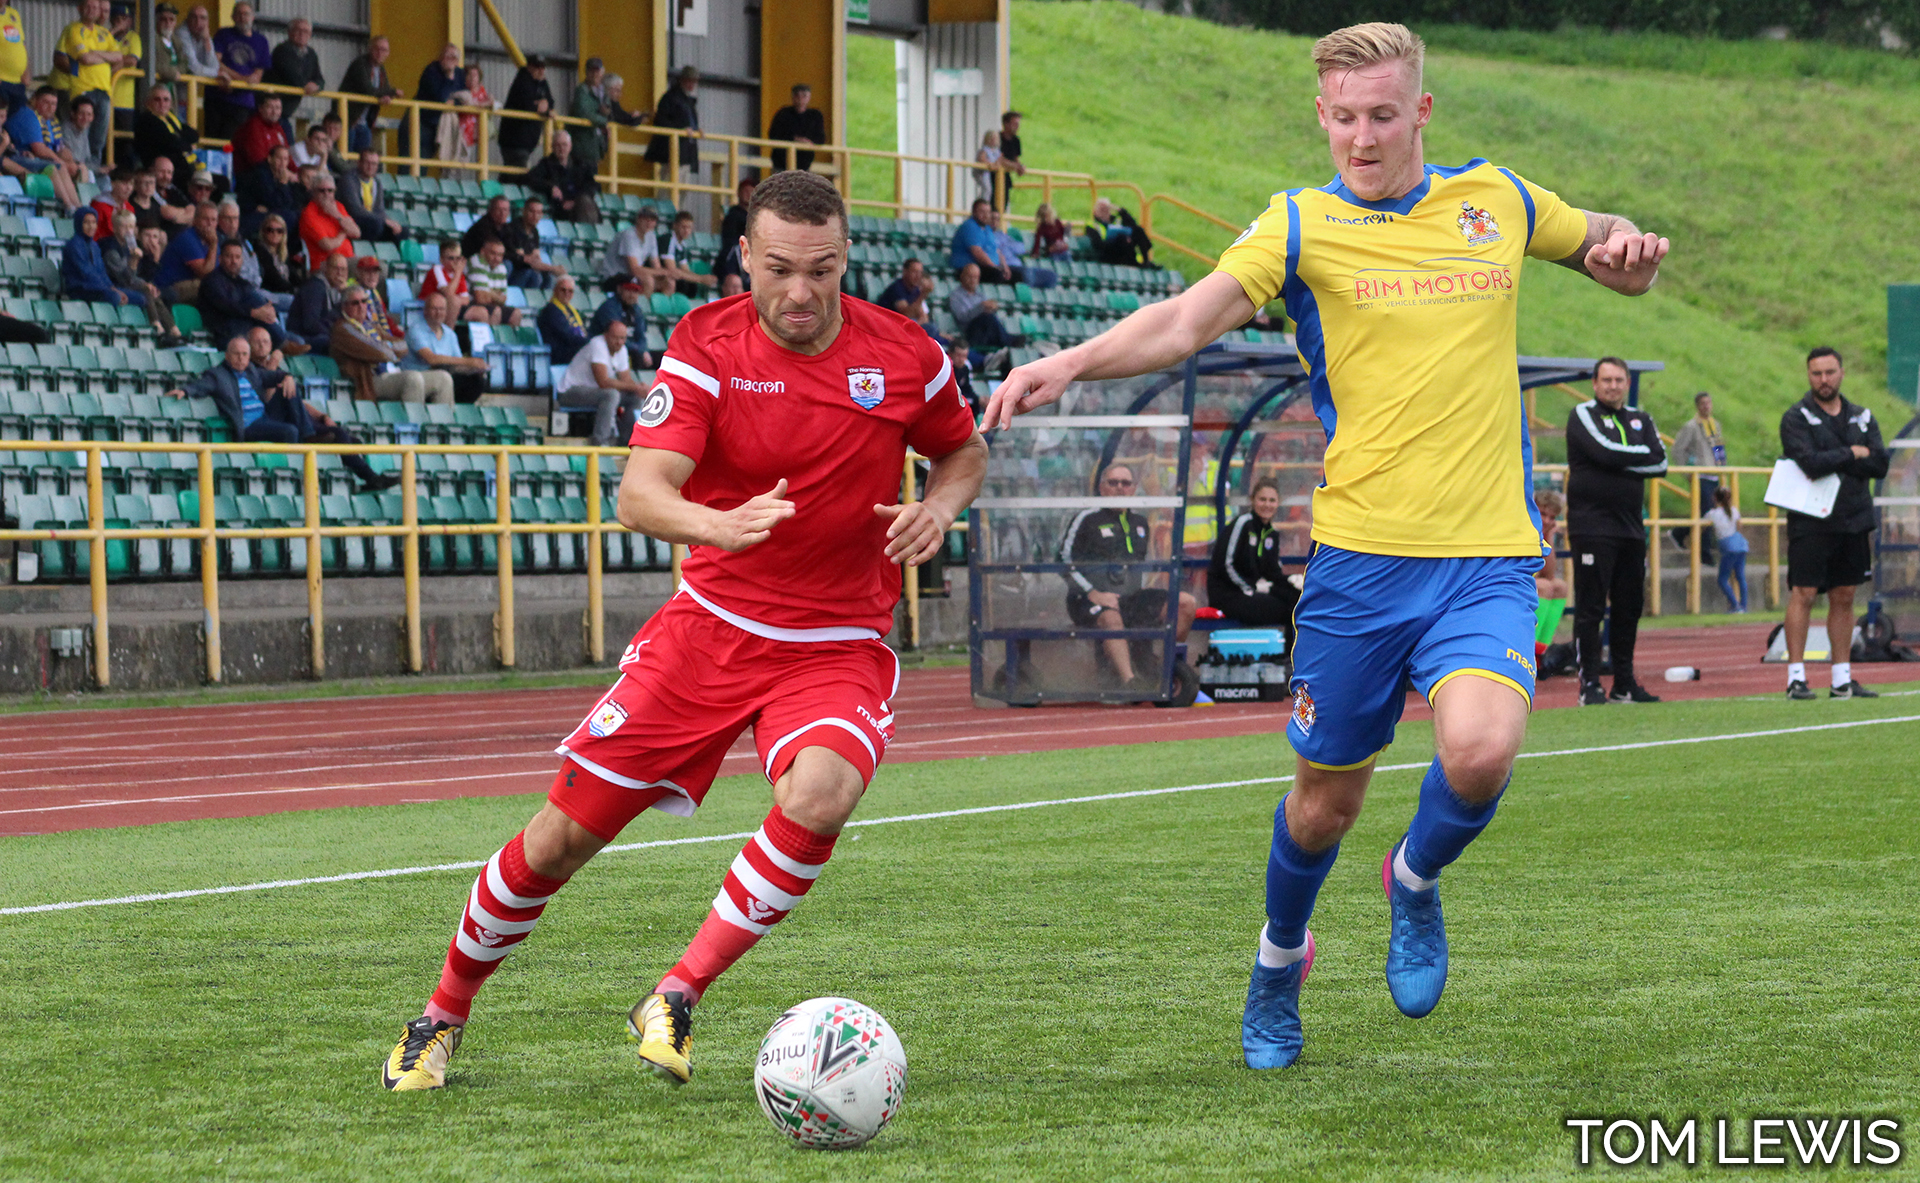 Ryan Wignall looks to evade the Barry defence - Photo courtesy of Tom Lewis